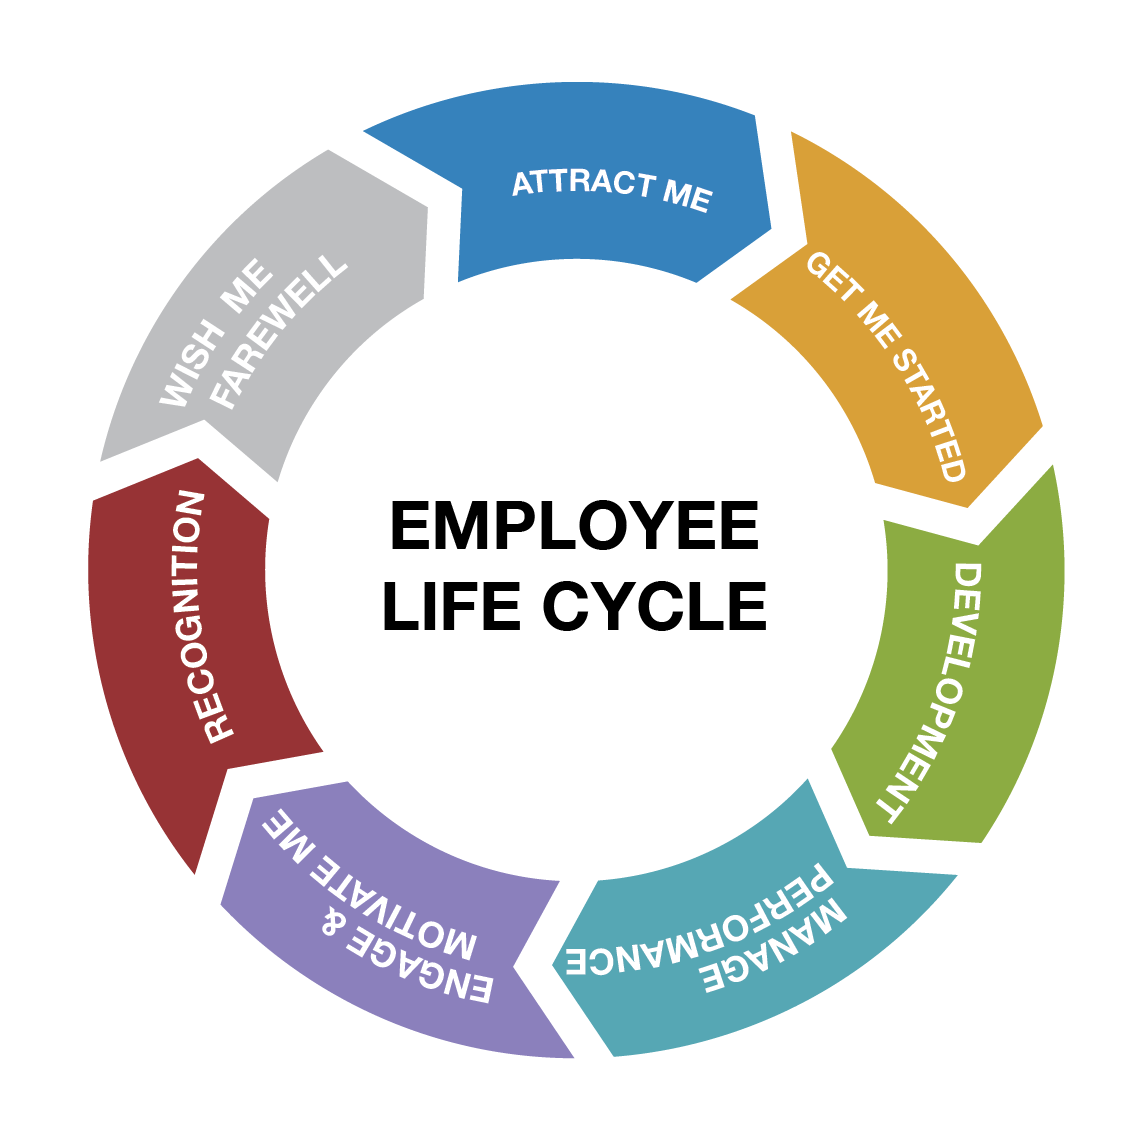 hight resolution of employee life cycle info graphic hr management talent management leadership development training business